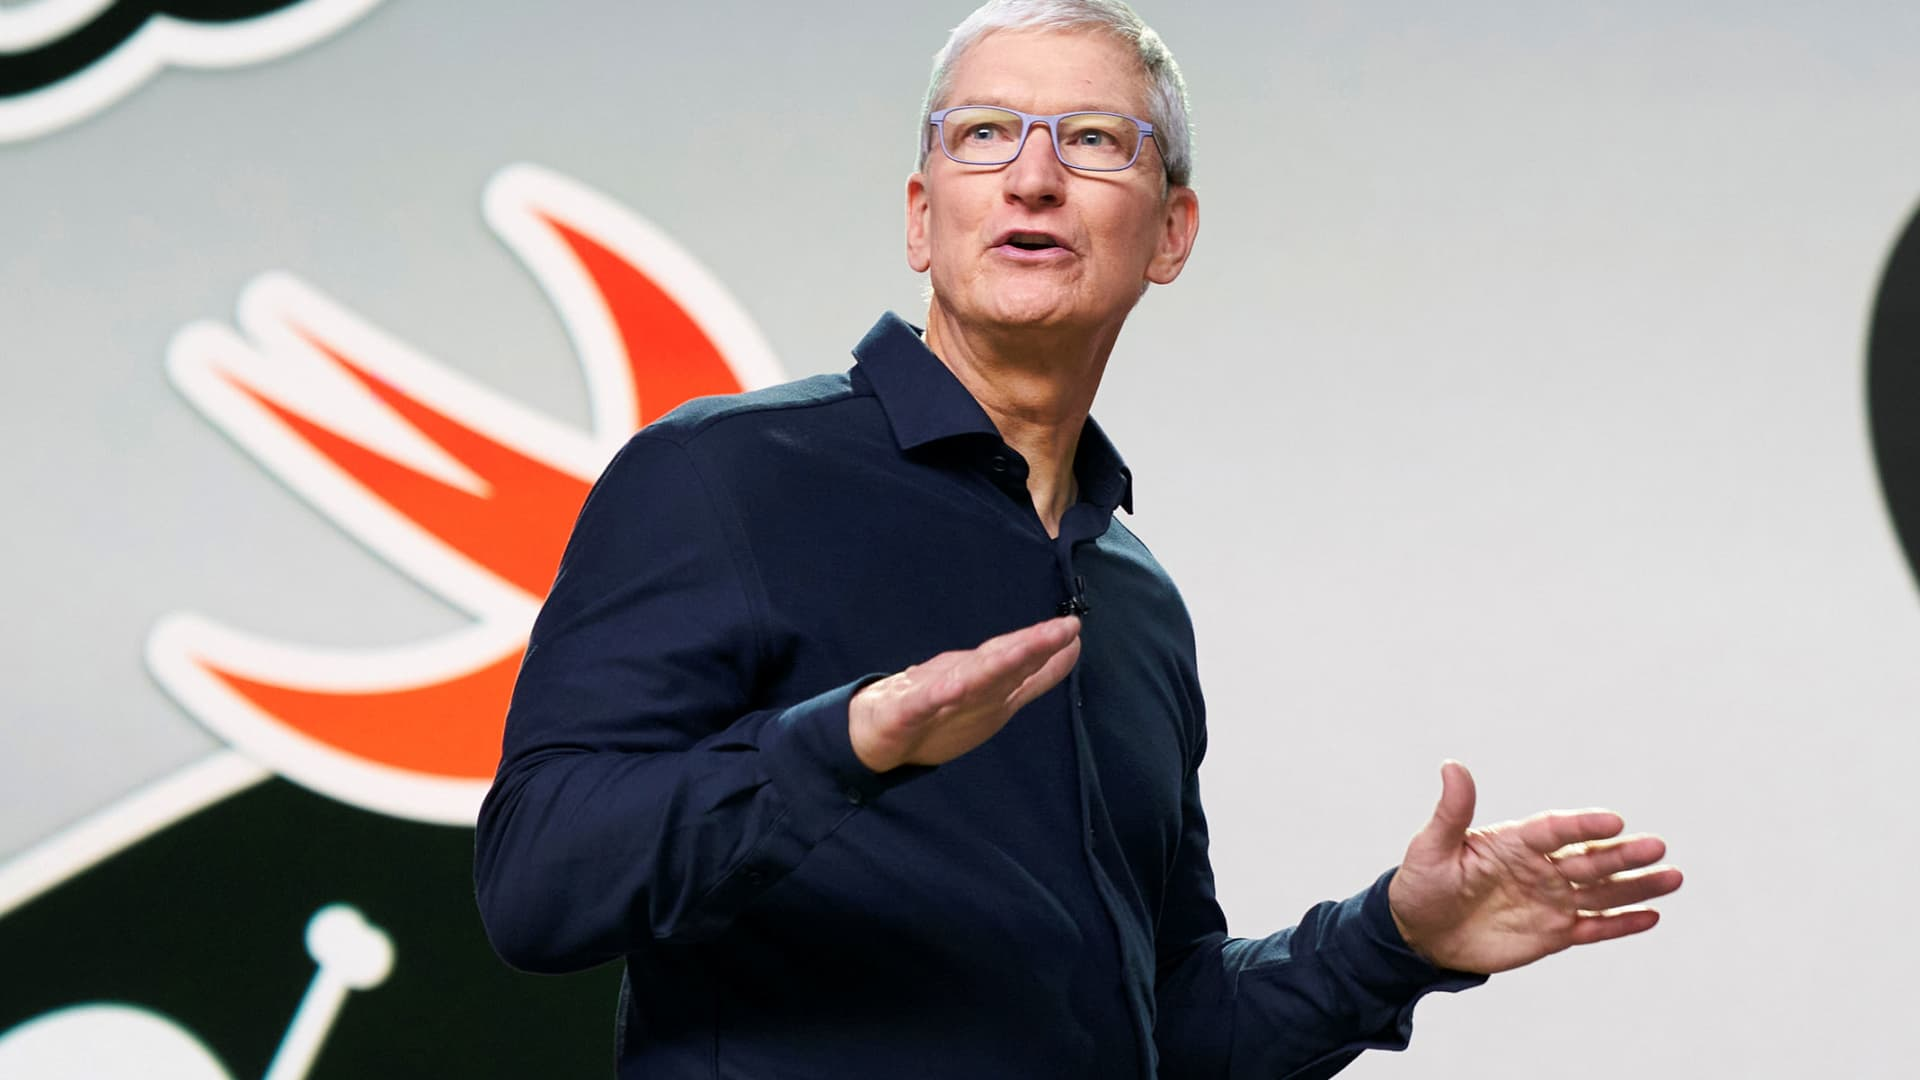 Apple CEO Tim Cook delivers the keynote address during the 2020 Apple Worldwide Developers Conference (WWDC) at Steve Jobs Theater in Cupertino, California, June 22, 2020.